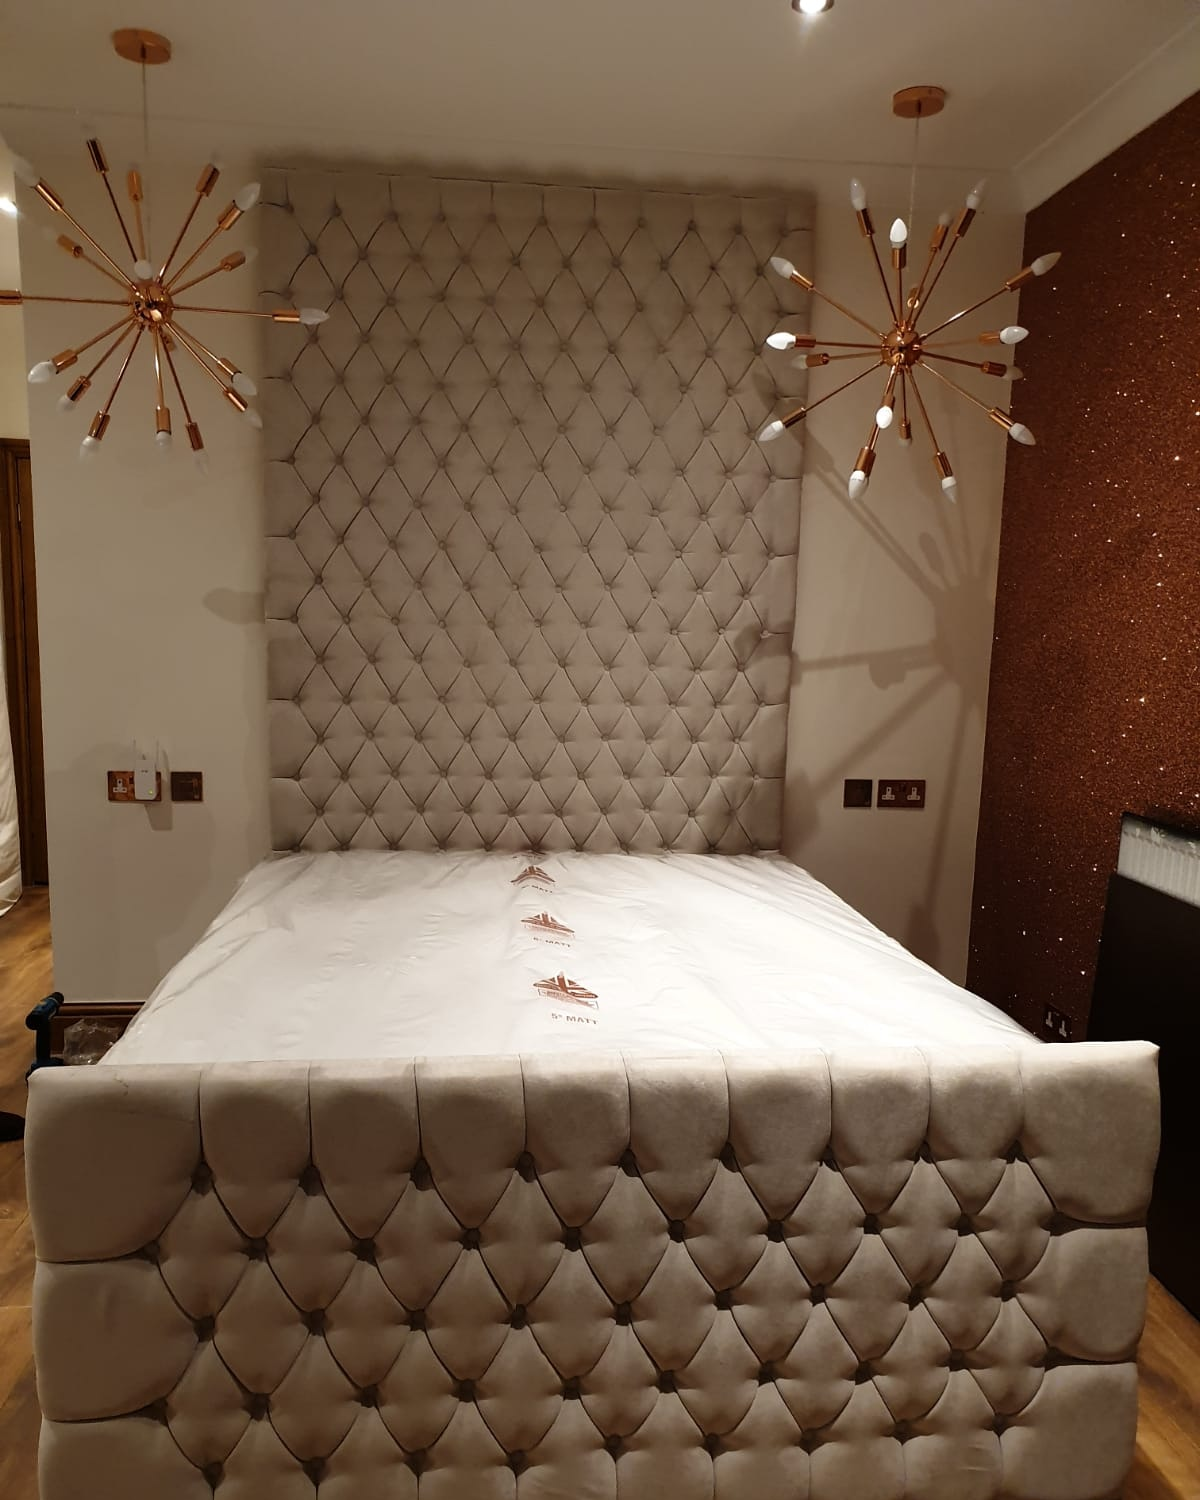 70 Inch Tall Headboard Bed Frame Wemakebeds